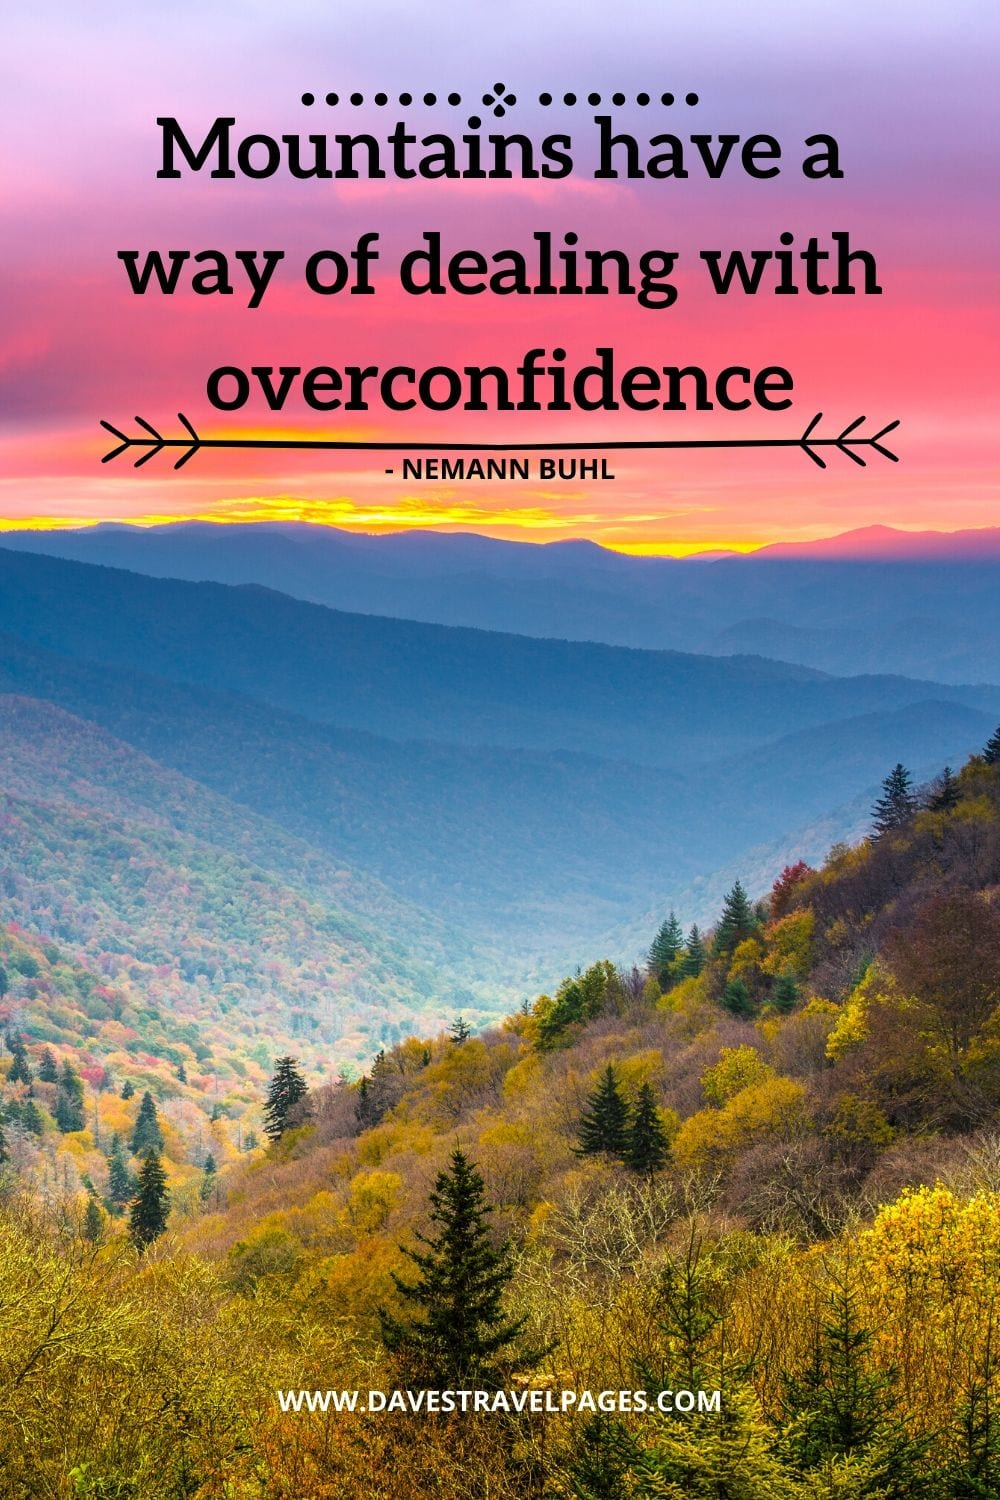 Mountain Trekking Quotes: Mountains have a way of dealing with overconfidence - Nemann Buhl